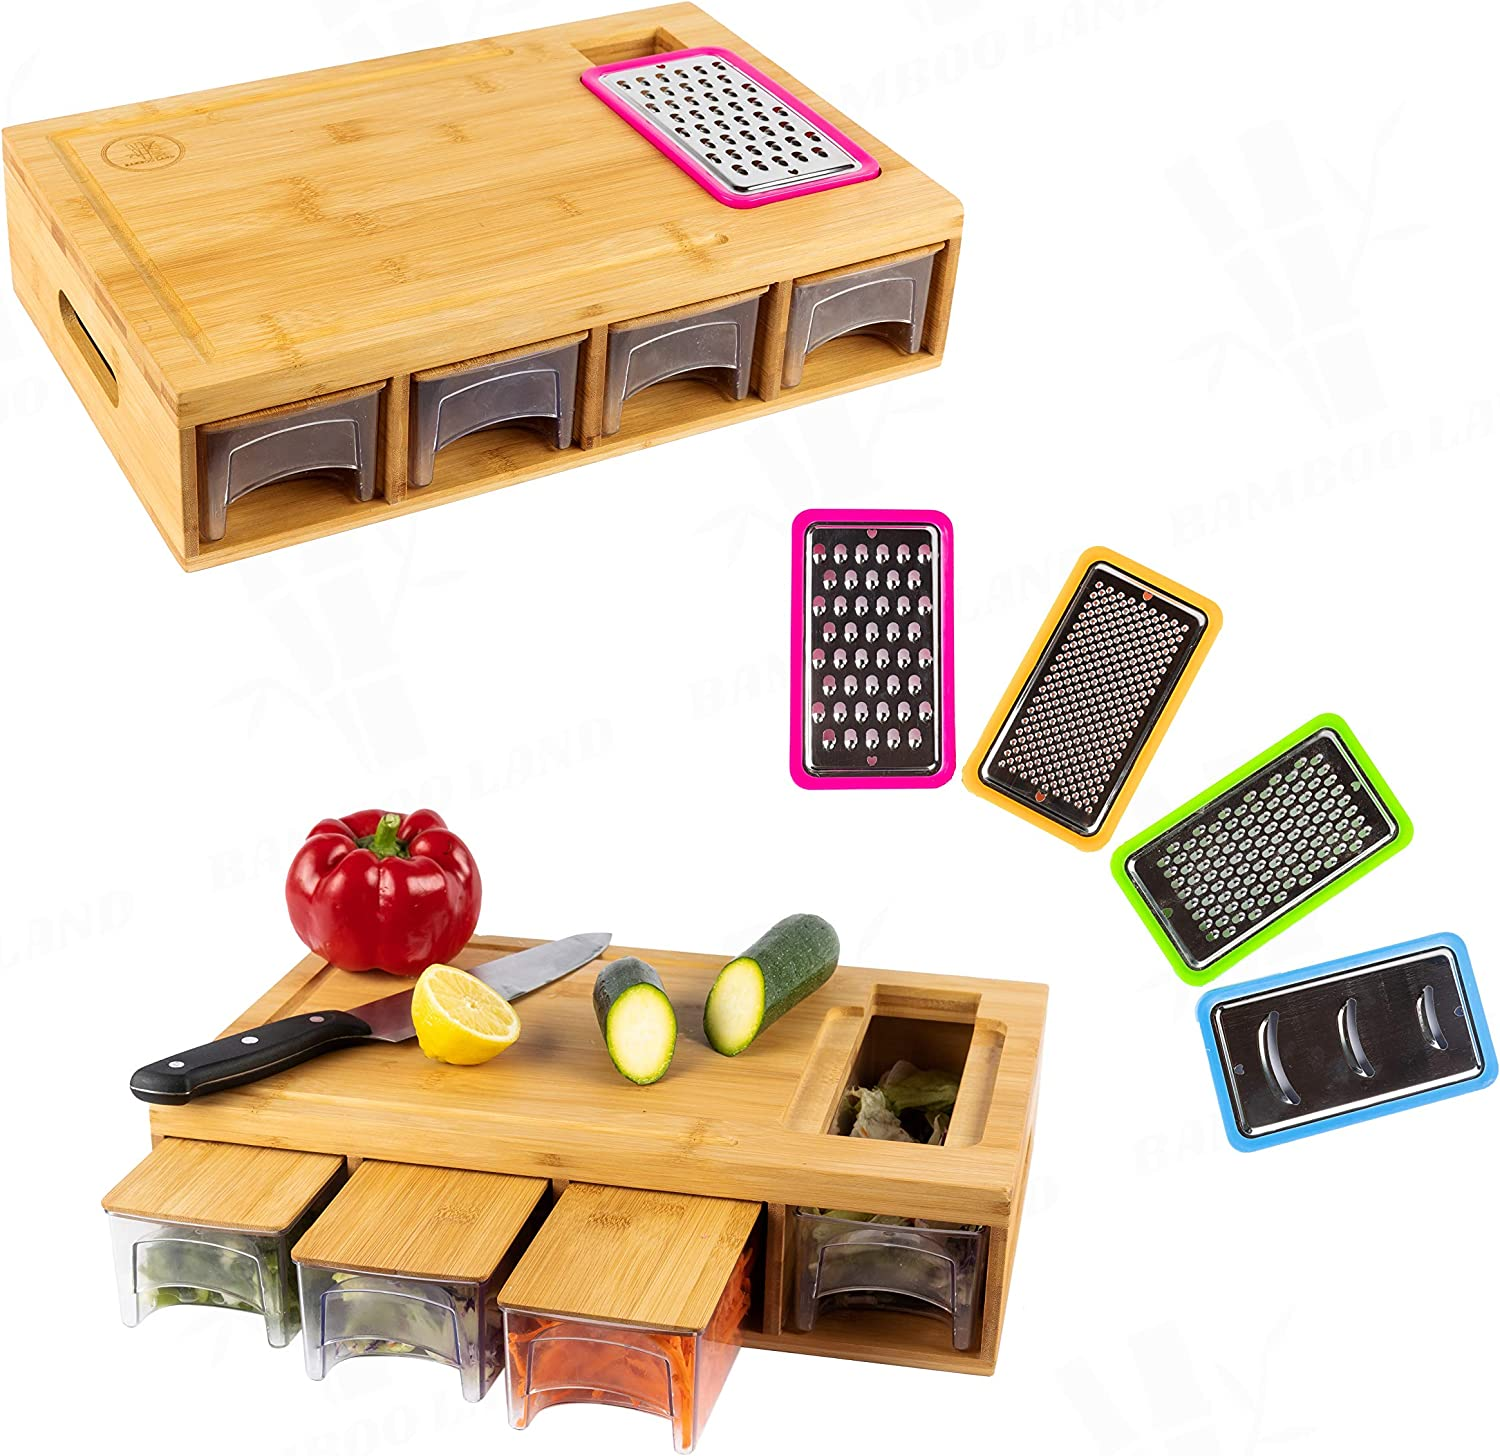 BAMBOO LAND Large bamboo cutting board with trays/drawers/container and bamboo lids, Chopping board with juice grooves, handles & food sliding opening, cutting board for easy food prep and cleanup